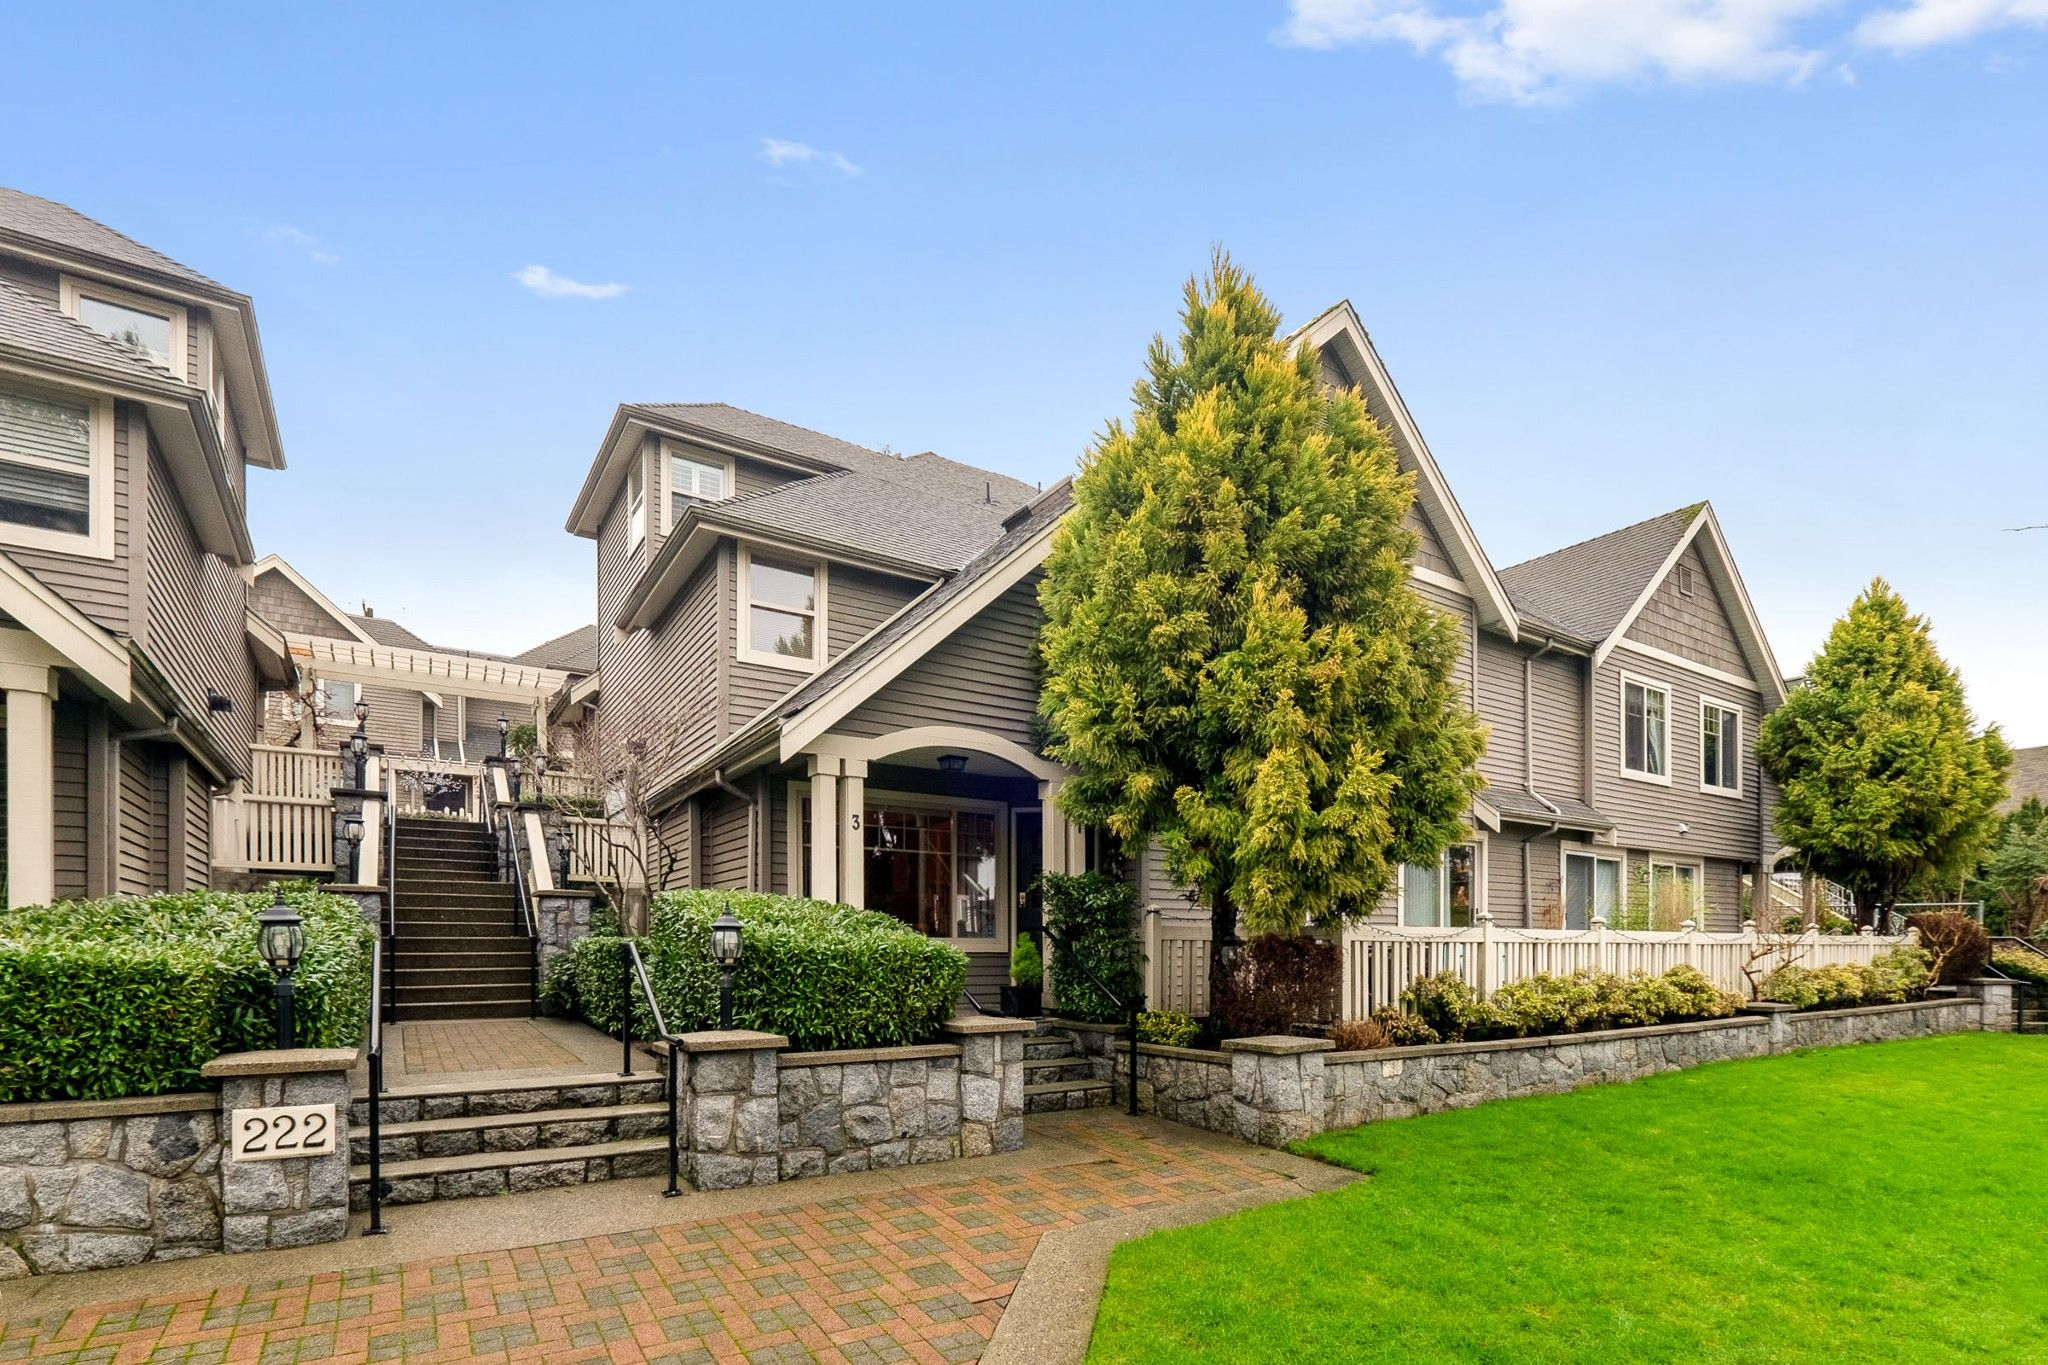 """Main Photo: 3 222 E 5TH Street in North Vancouver: Lower Lonsdale Townhouse for sale in """"BURHAM COURT"""" : MLS®# R2527548"""